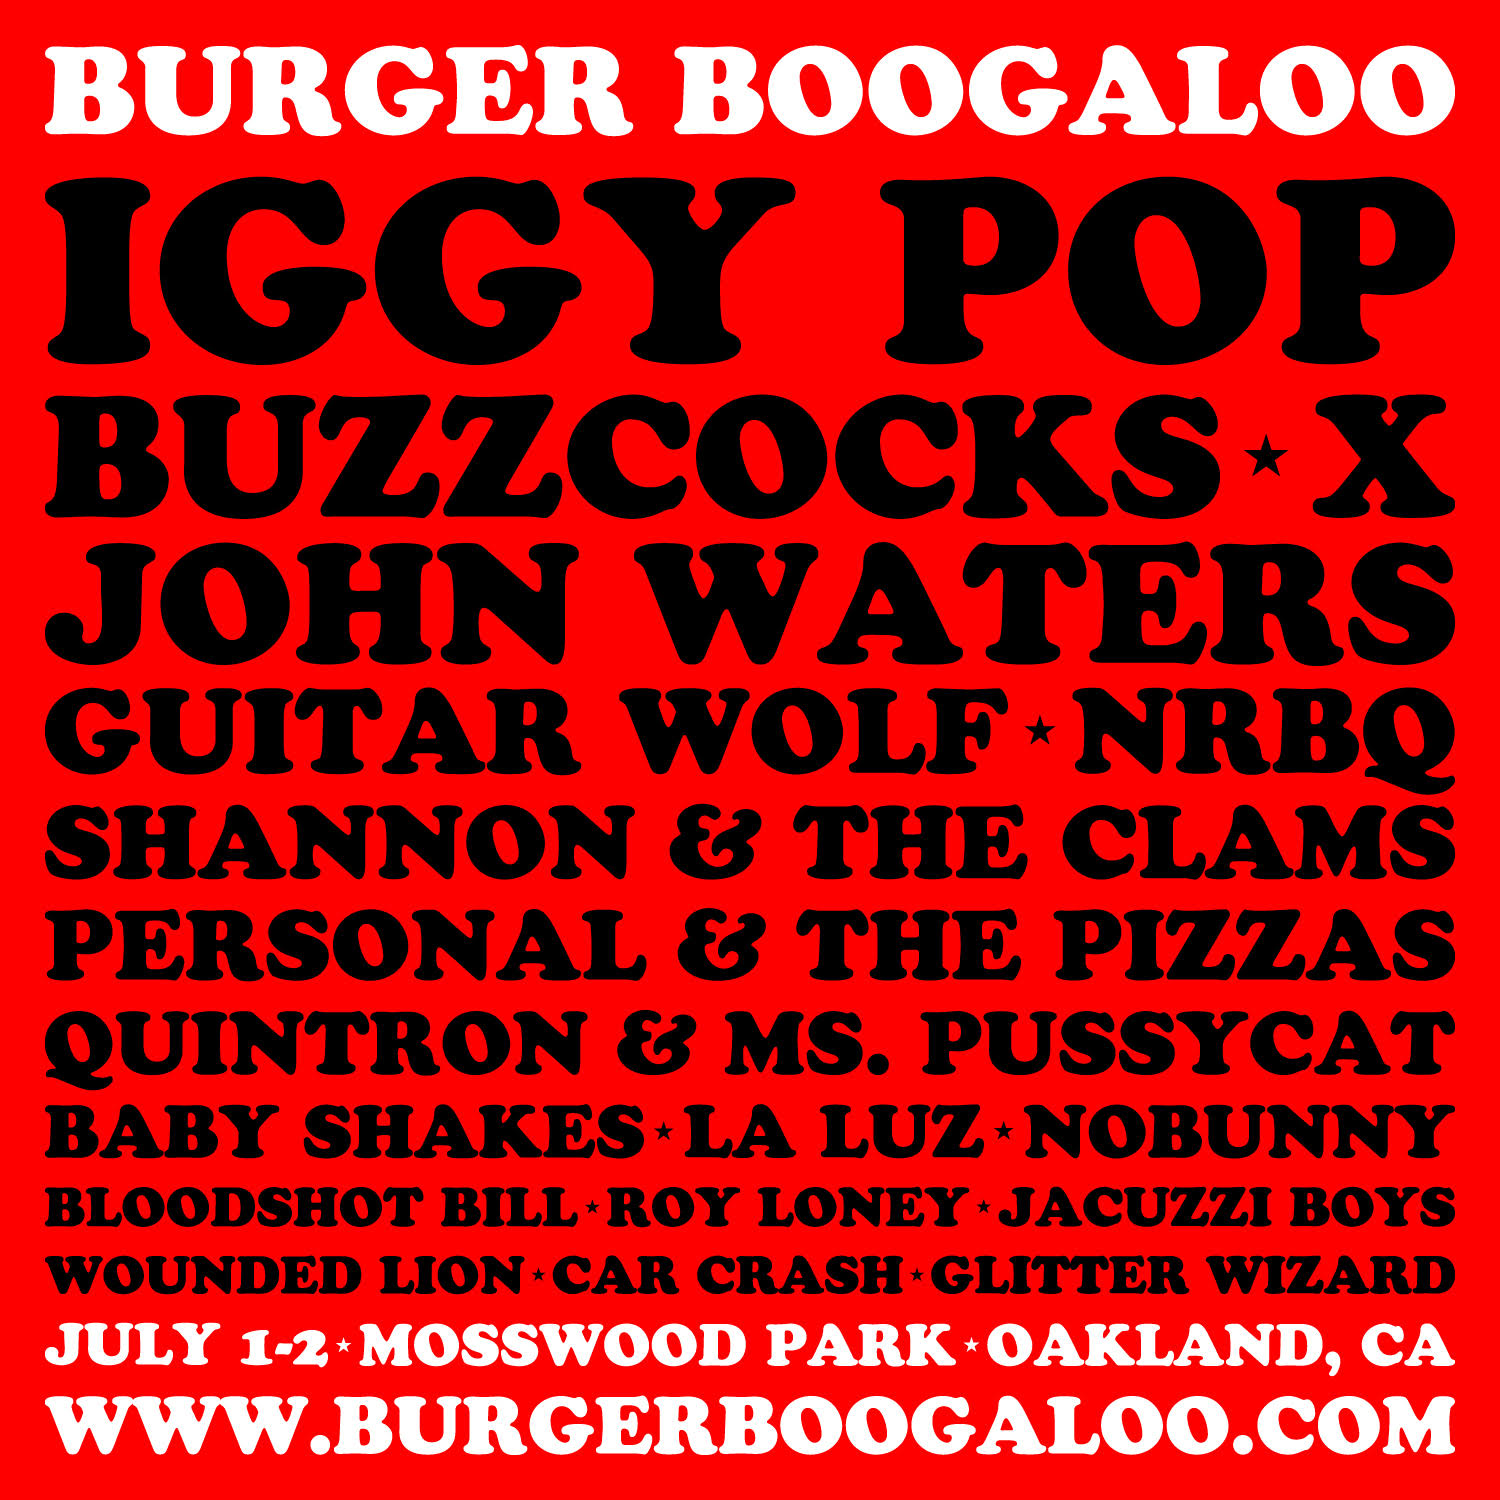 unnamed2 Burger Boogaloo announces 2017 lineup: Iggy Pop, Buzzcocks, X, and more